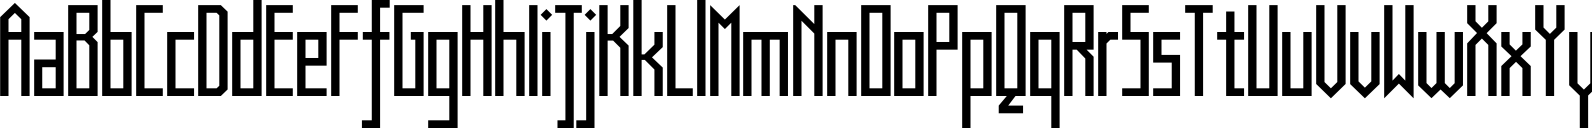 Muzarela Semi condensed Regular Font